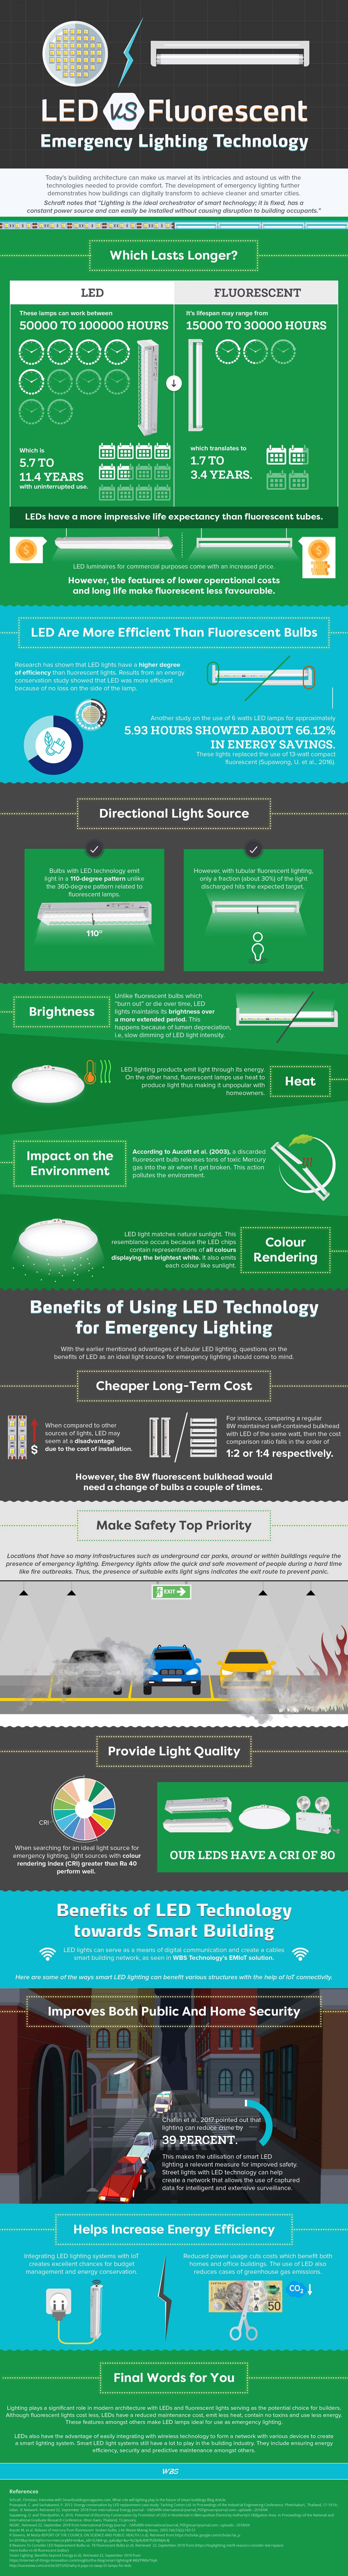 LED: Why It's the Natural Choice for Emergency Lighting Systems - Infographic